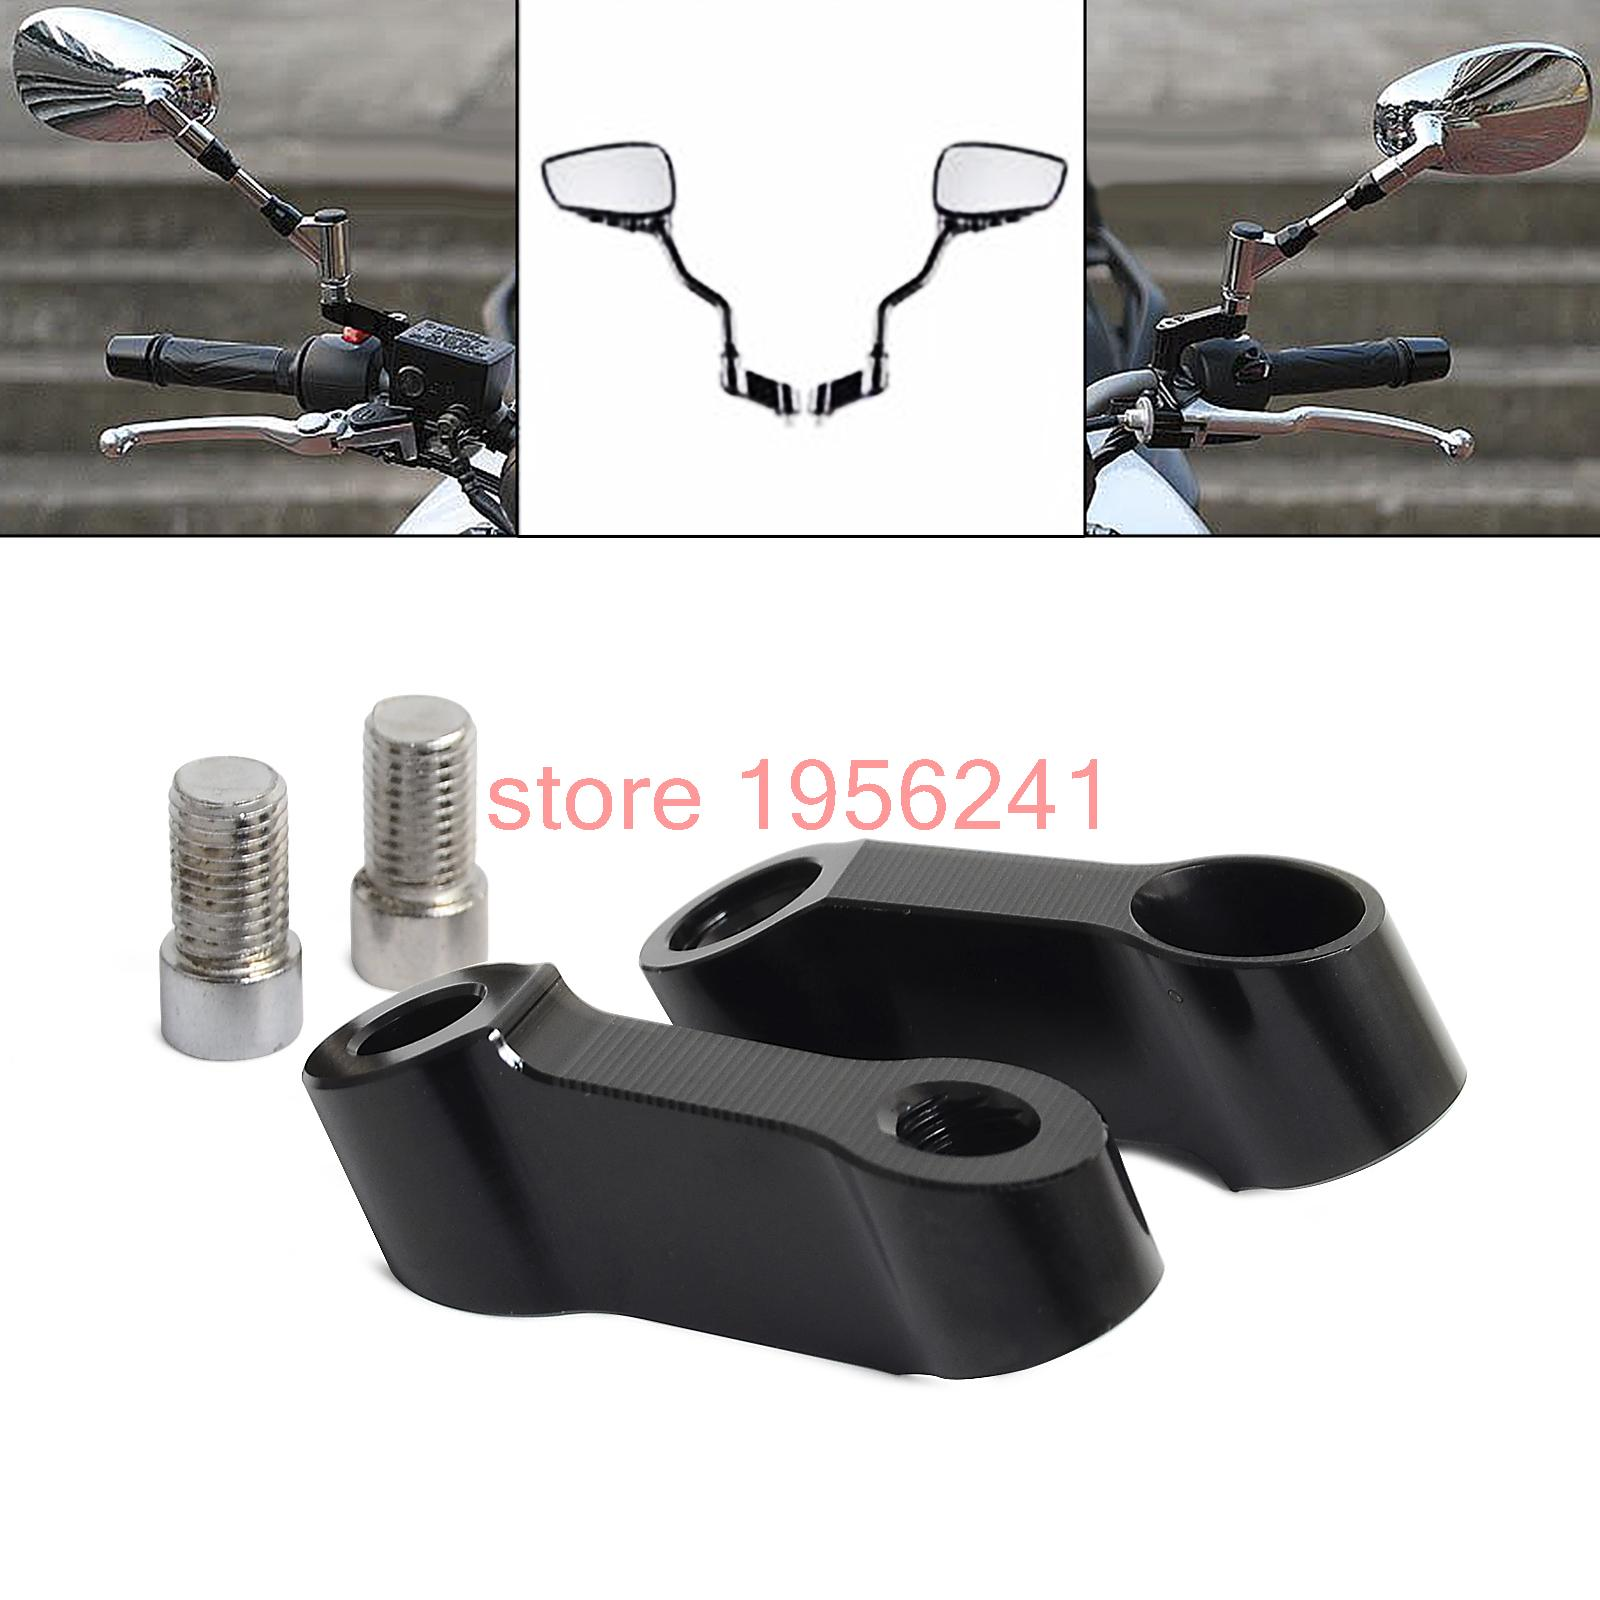 Black Bolts Size 10mm Mirrors Extension Riser Extend Adapter For Yamaha MT-09 MT-07 MT07 Fazer FZ-07 FZ-09 V-max1700 V-max 1700